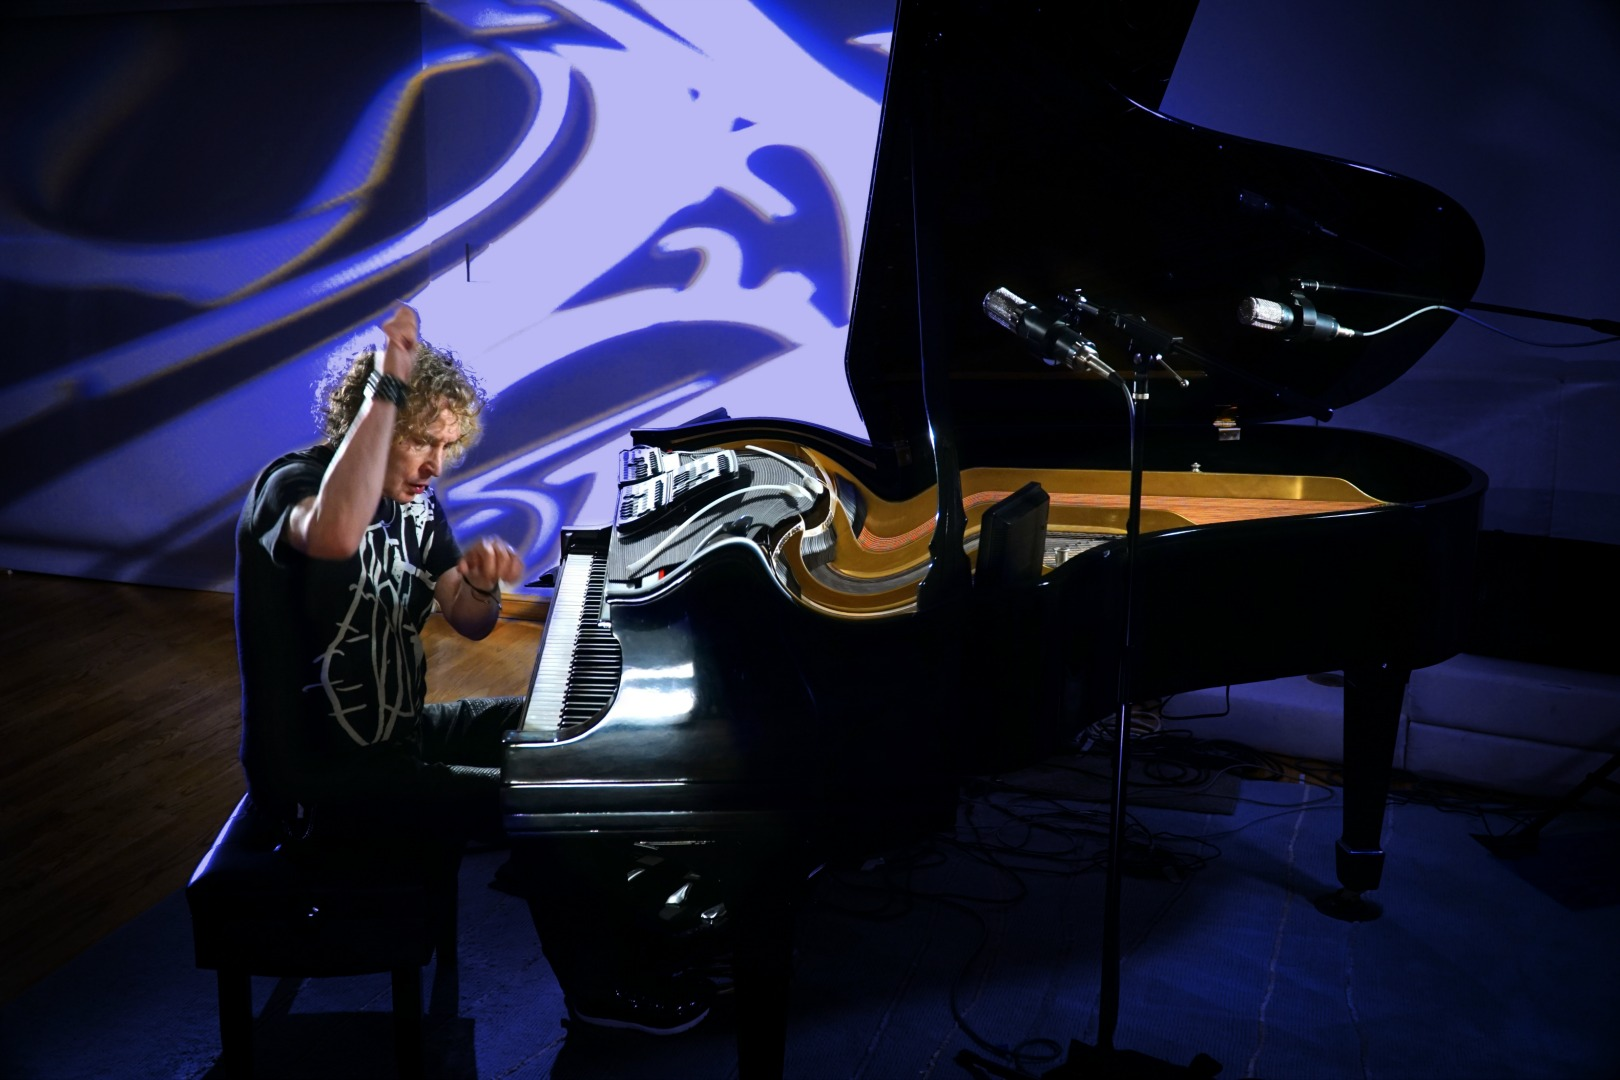 Peter Manning Robinson on his The Refractor Piano™ by Michael Rueter